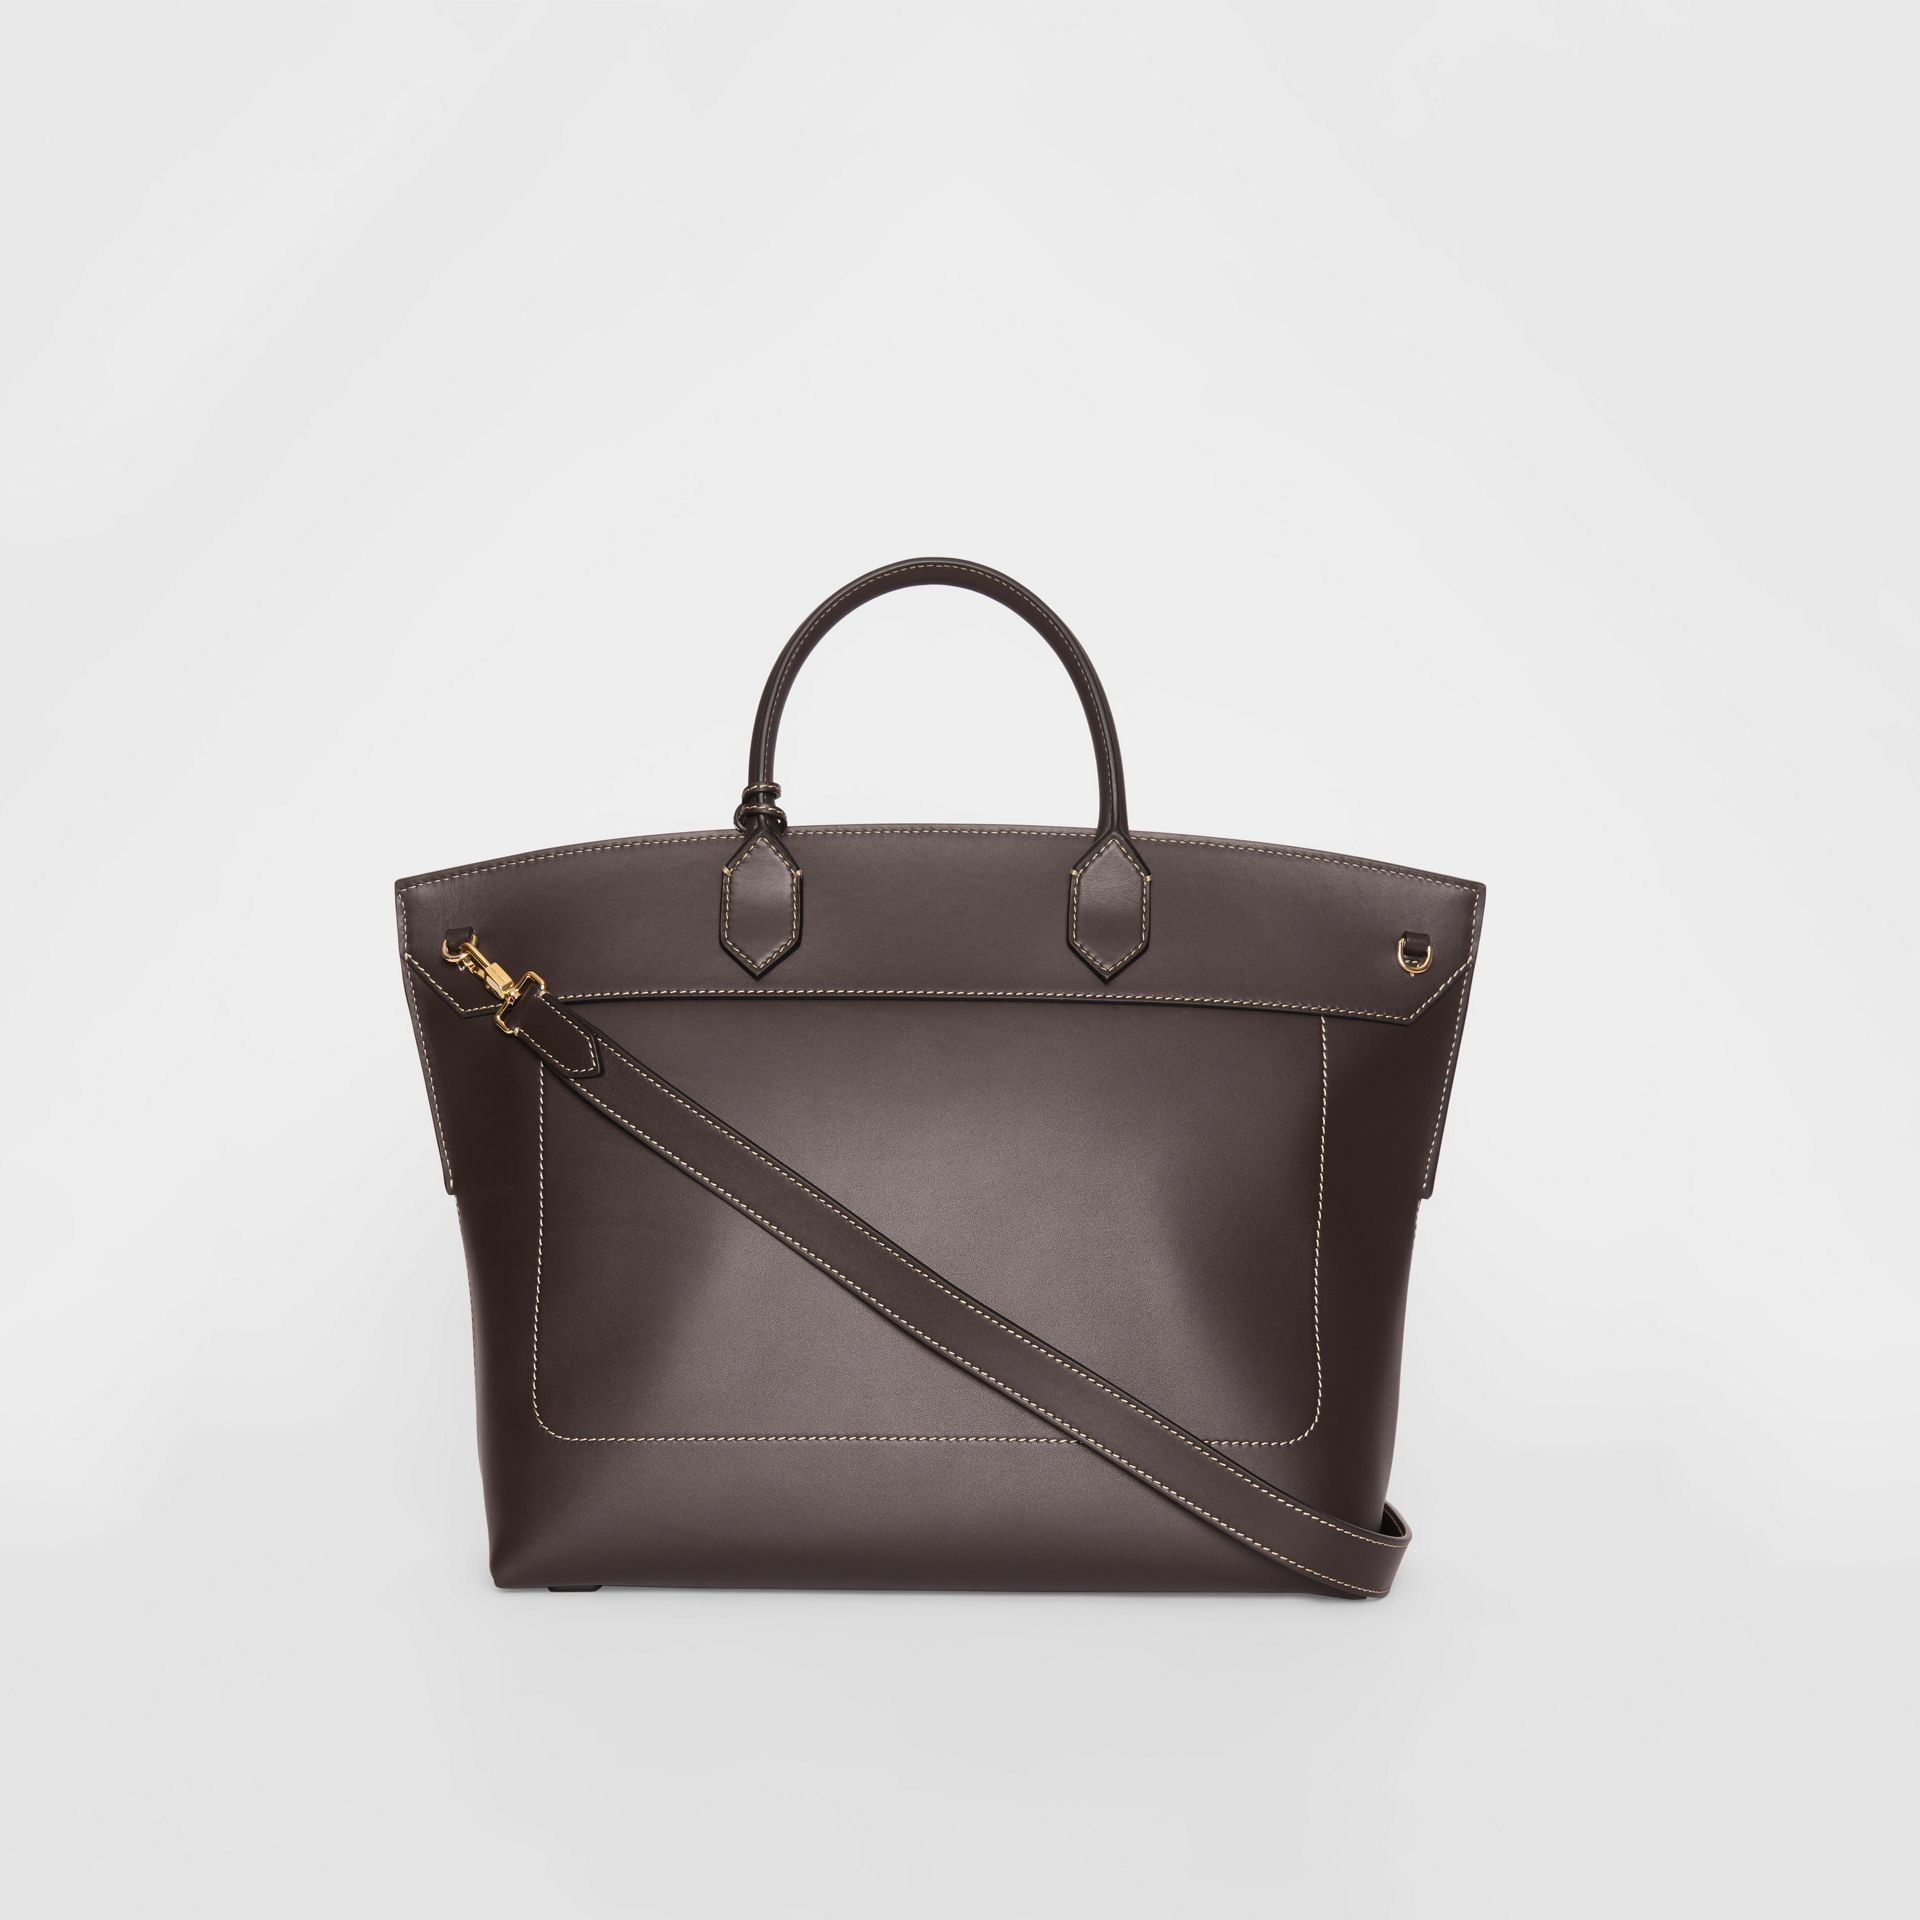 Leather Society Top Handle Bag in Coffee - Women | Burberry - gallery image 5